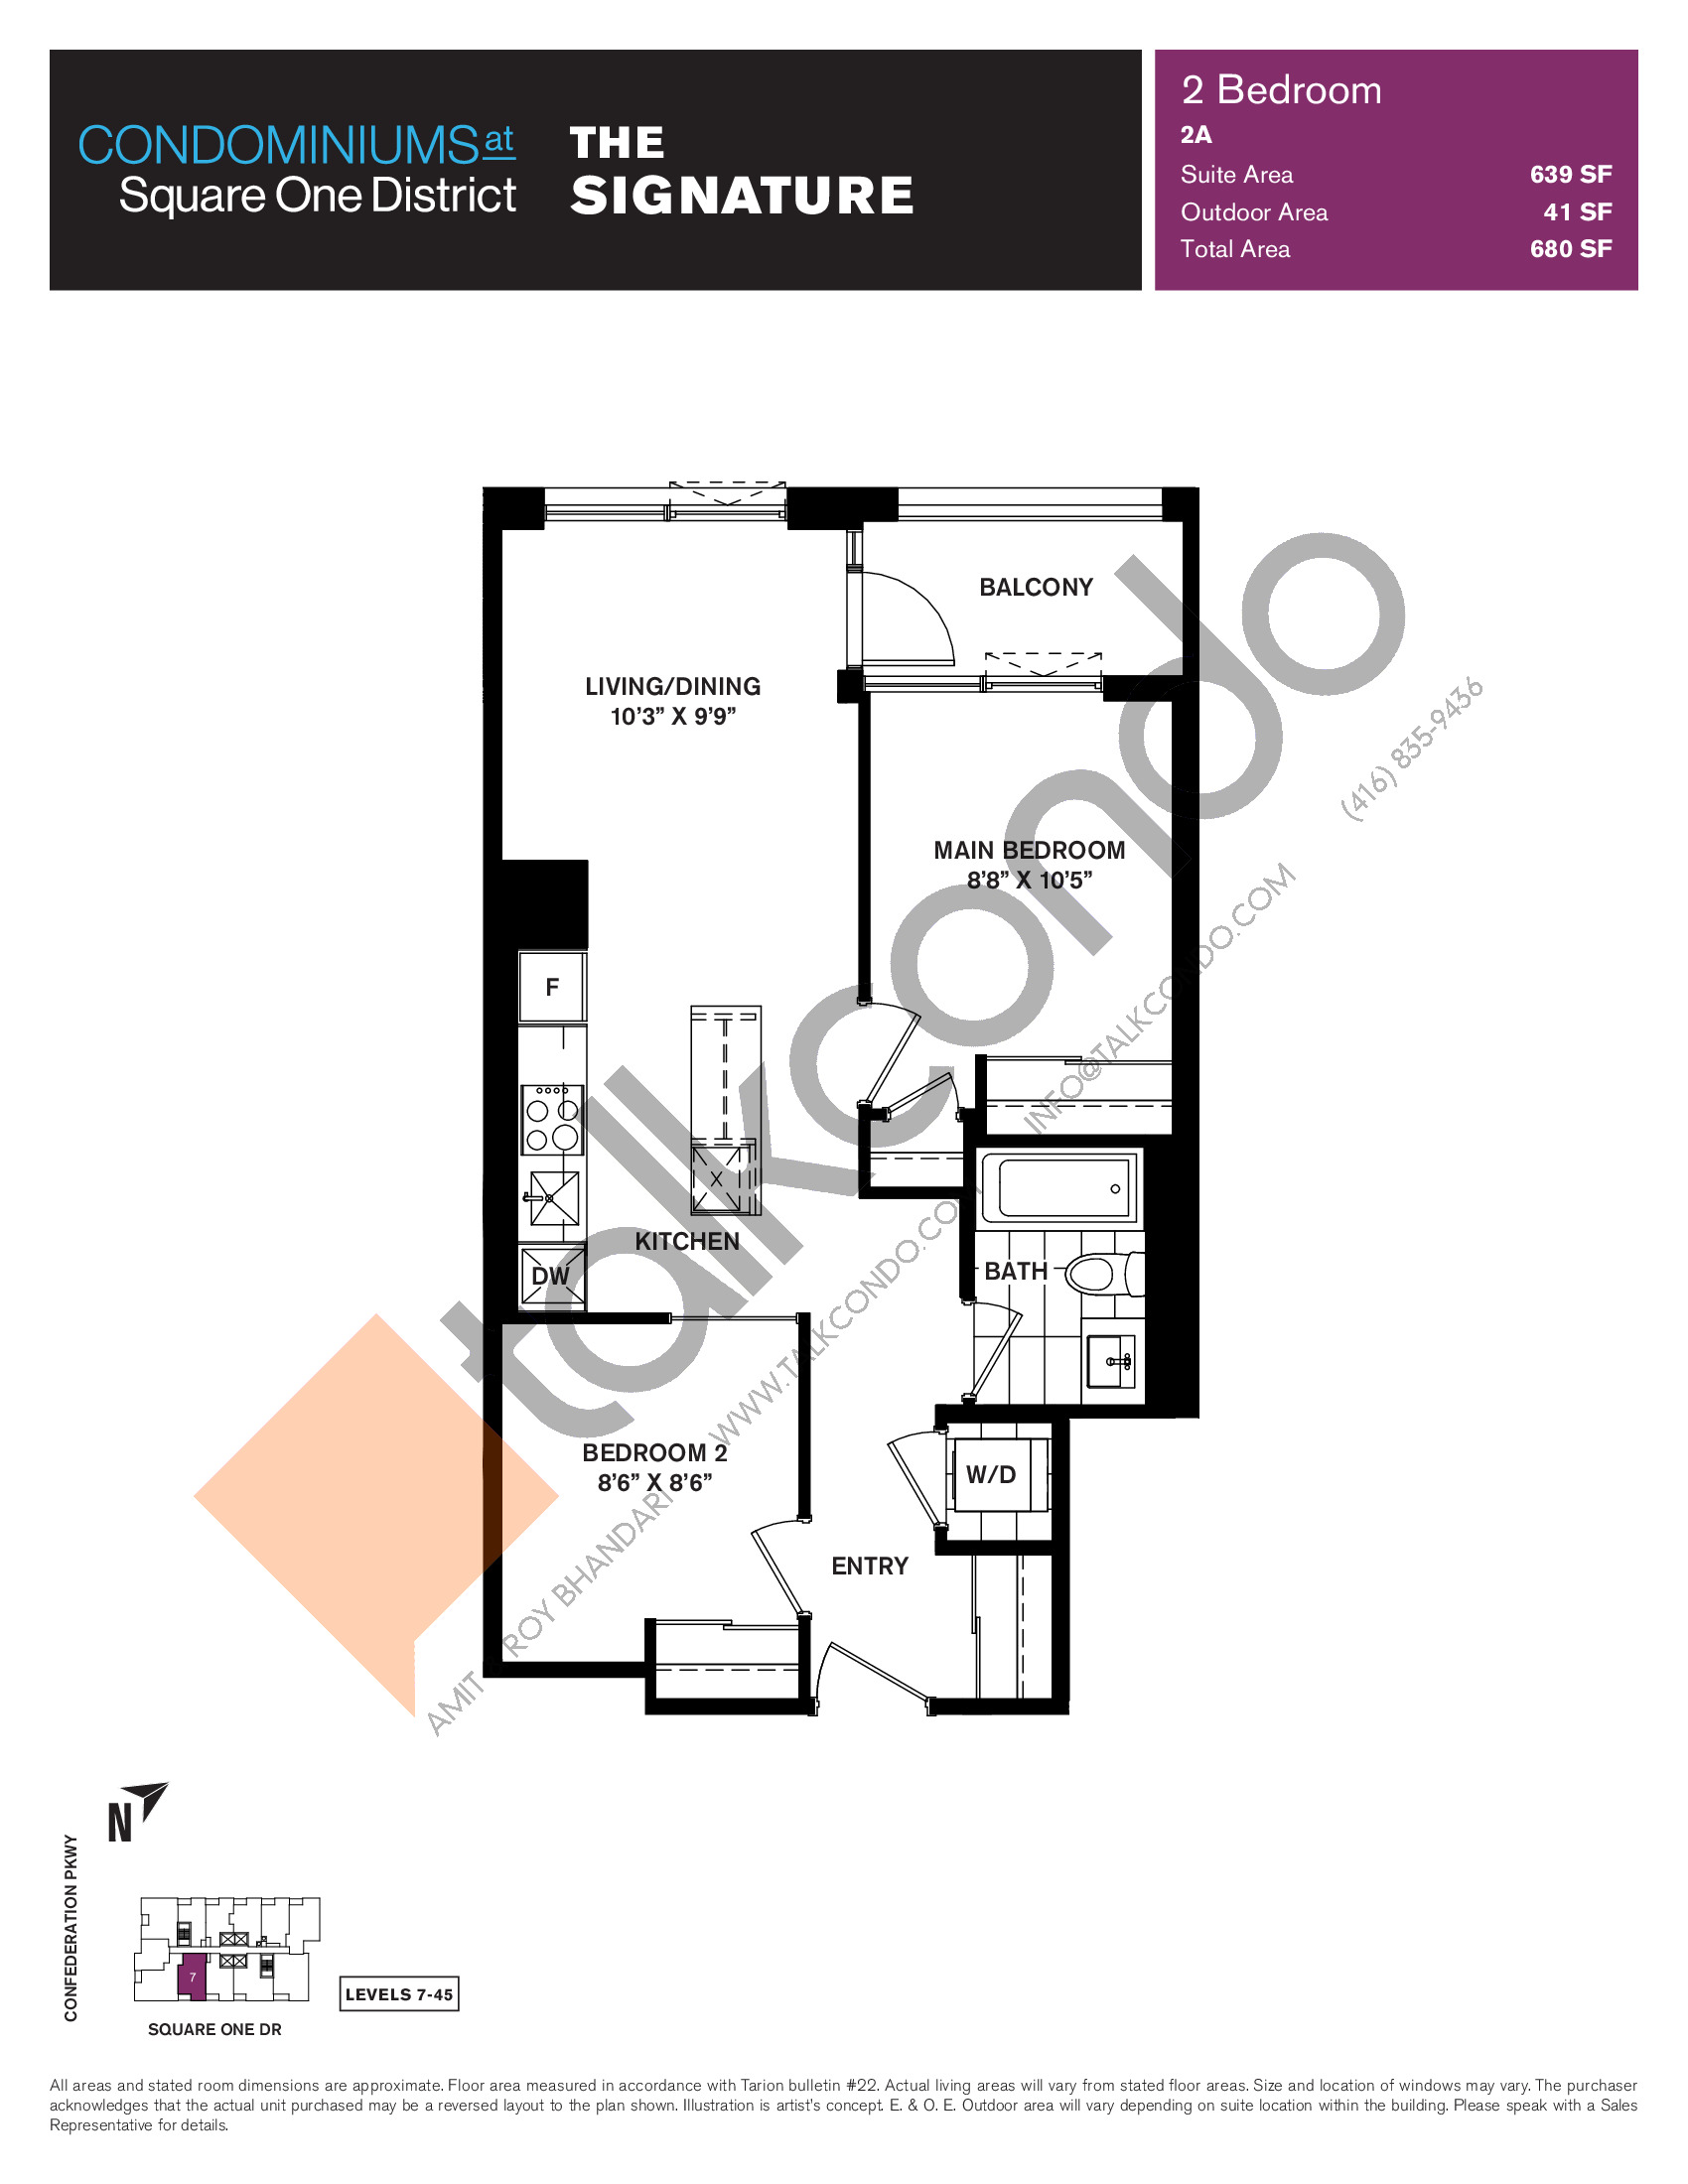 The Signature Floor Plan at Condominiums at Square One District - 639 sq.ft